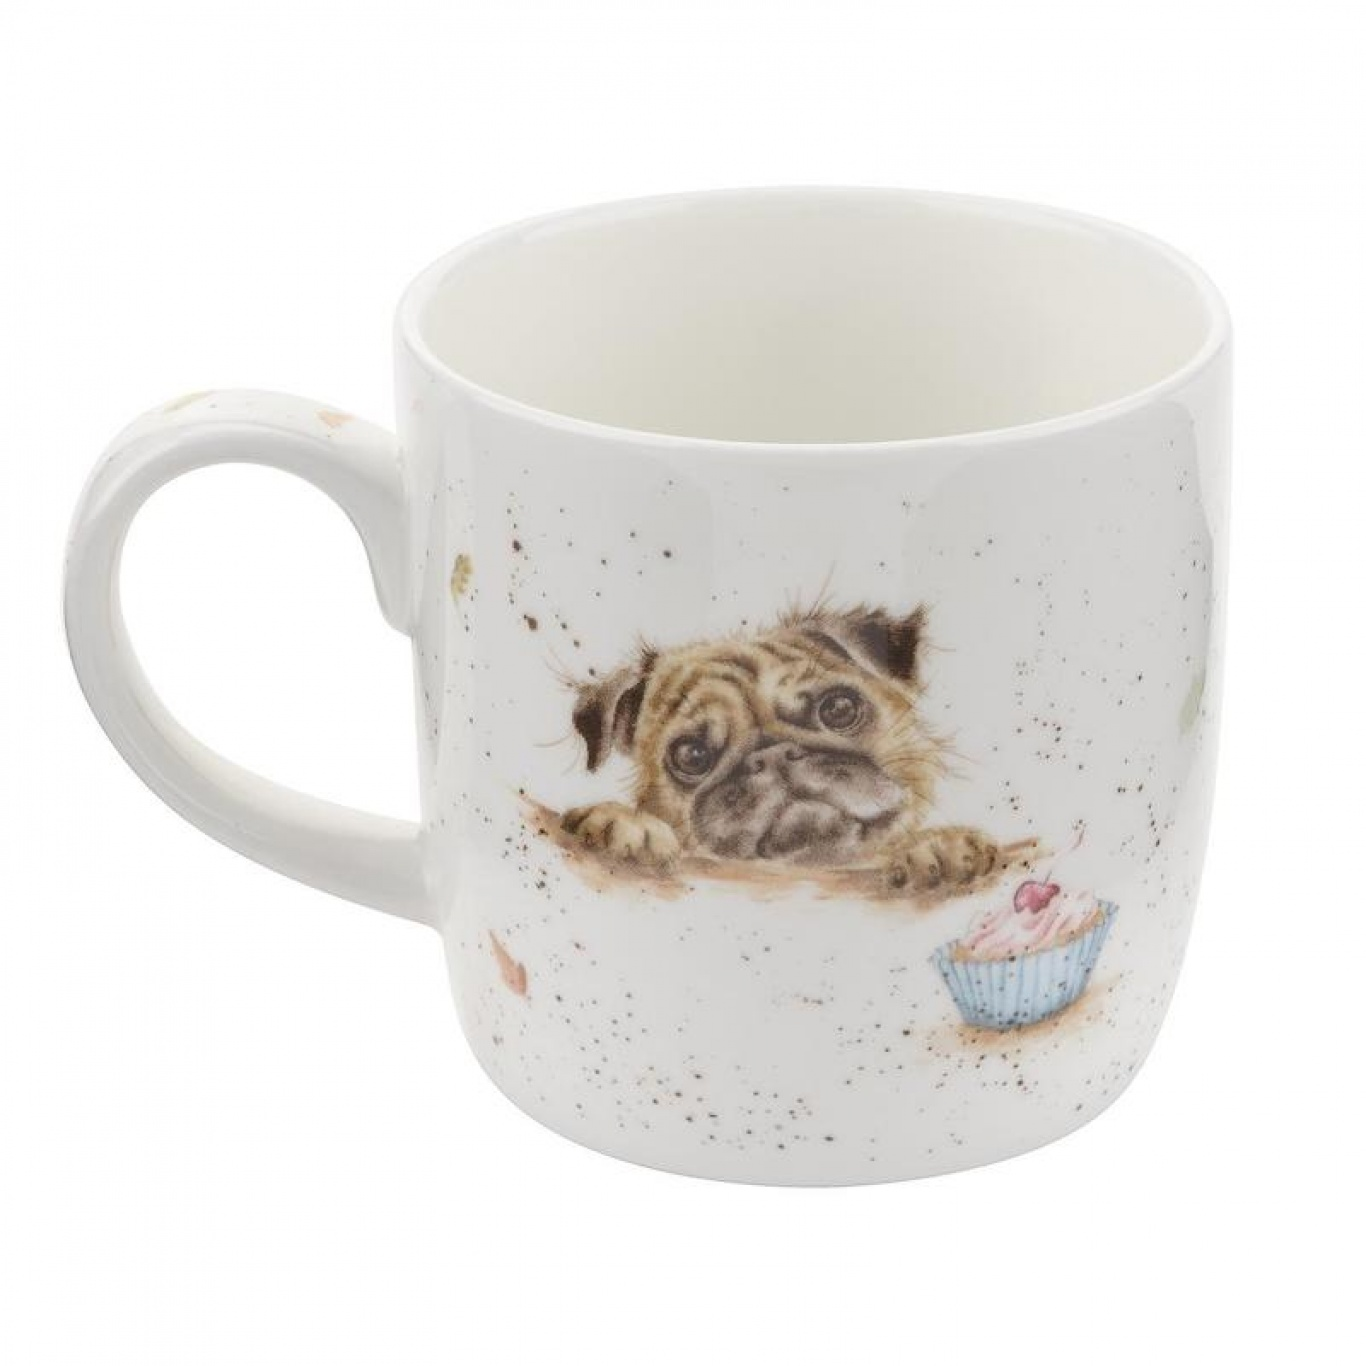 Image of Pug Love Wrendale Mug